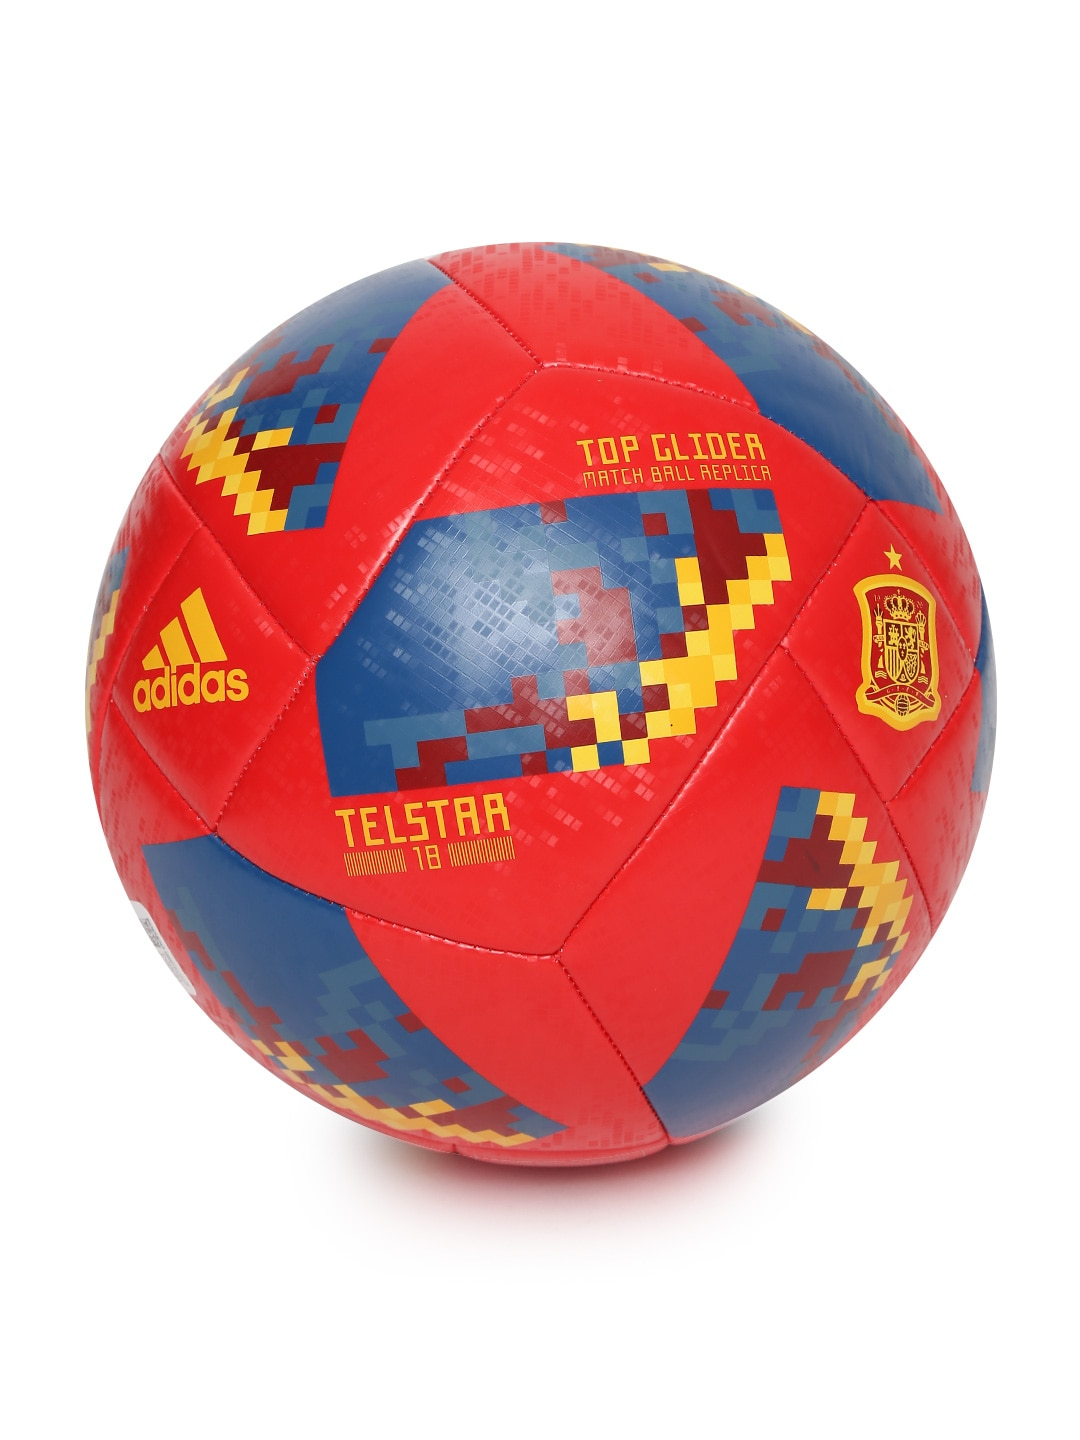 Adidas Football - Buy Adidas Soccer Ball Online in India  558a466a85